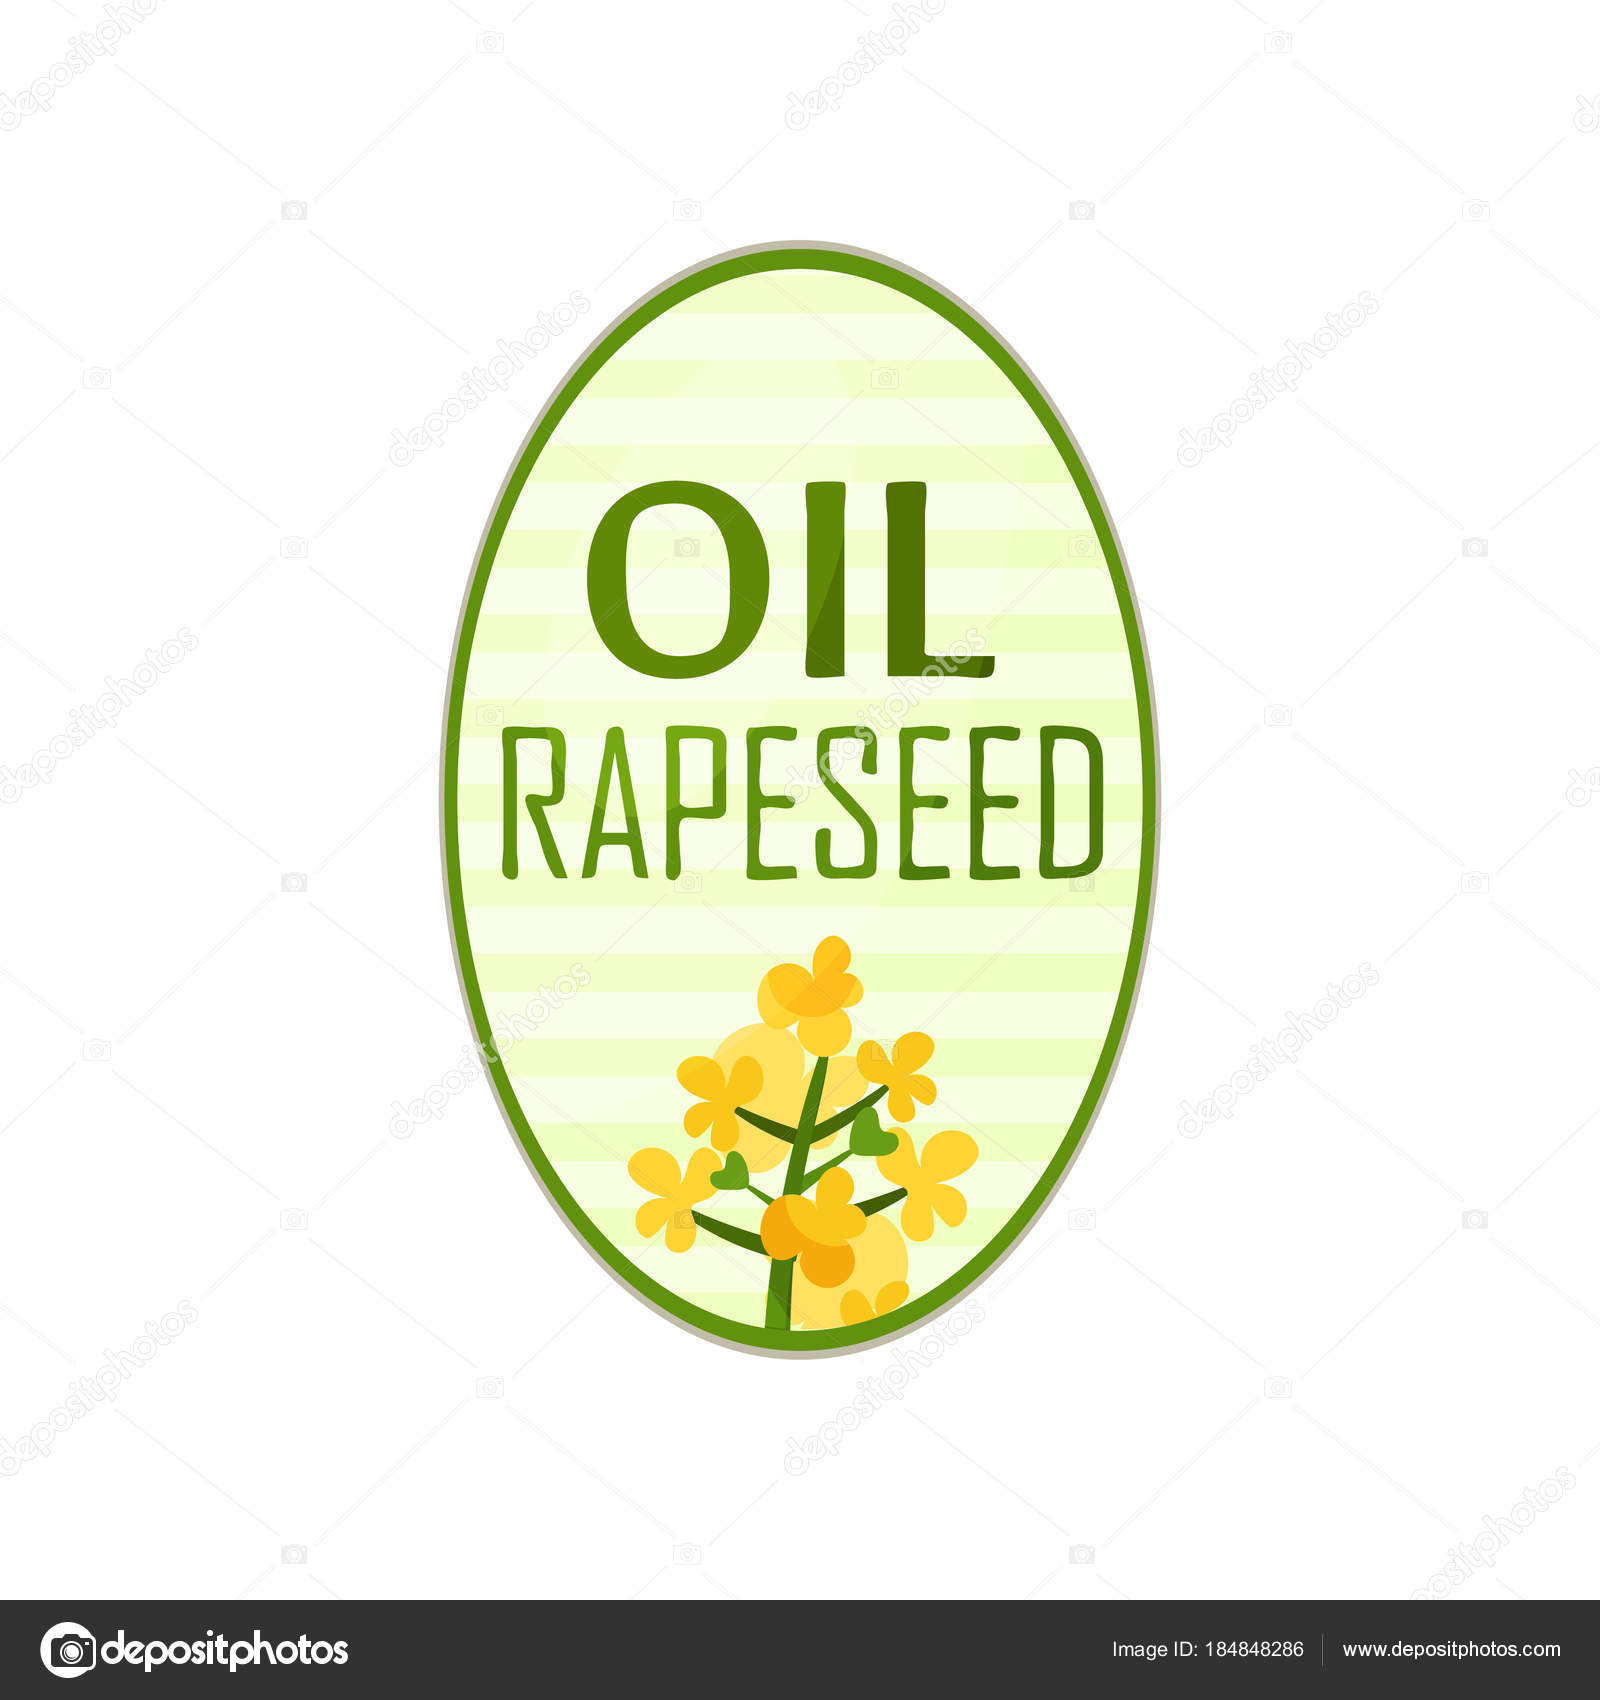 Label for bottle of vegetable oil in oval shape with text